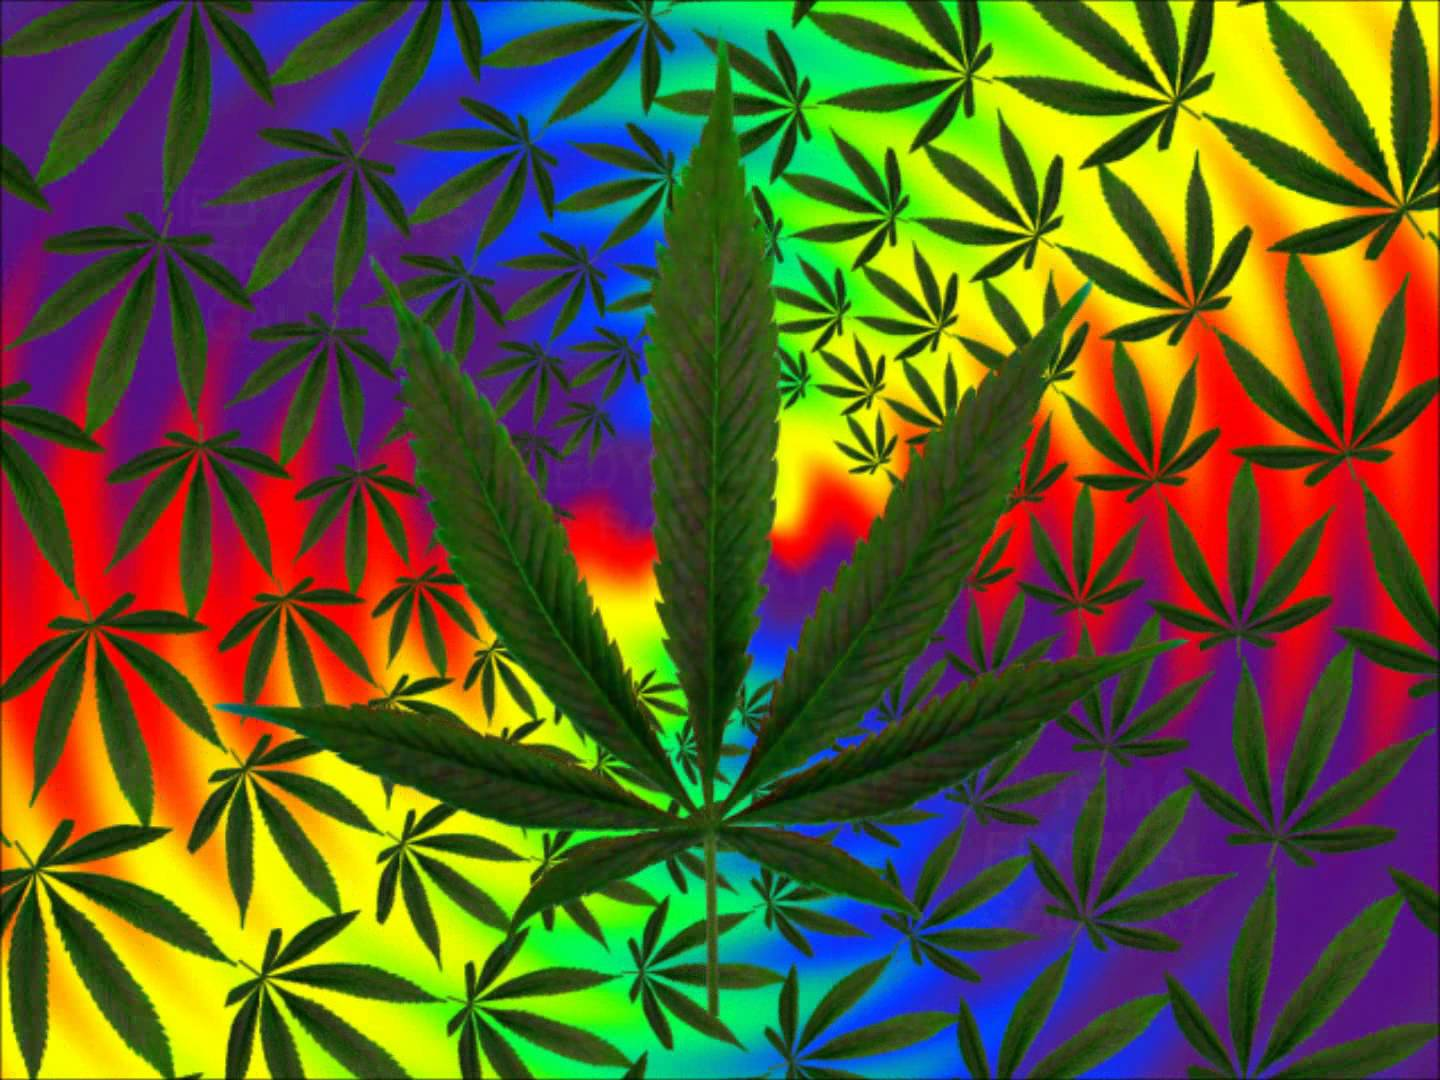 Trippy Pot Leaf Wallpapers - WallpaperSafari